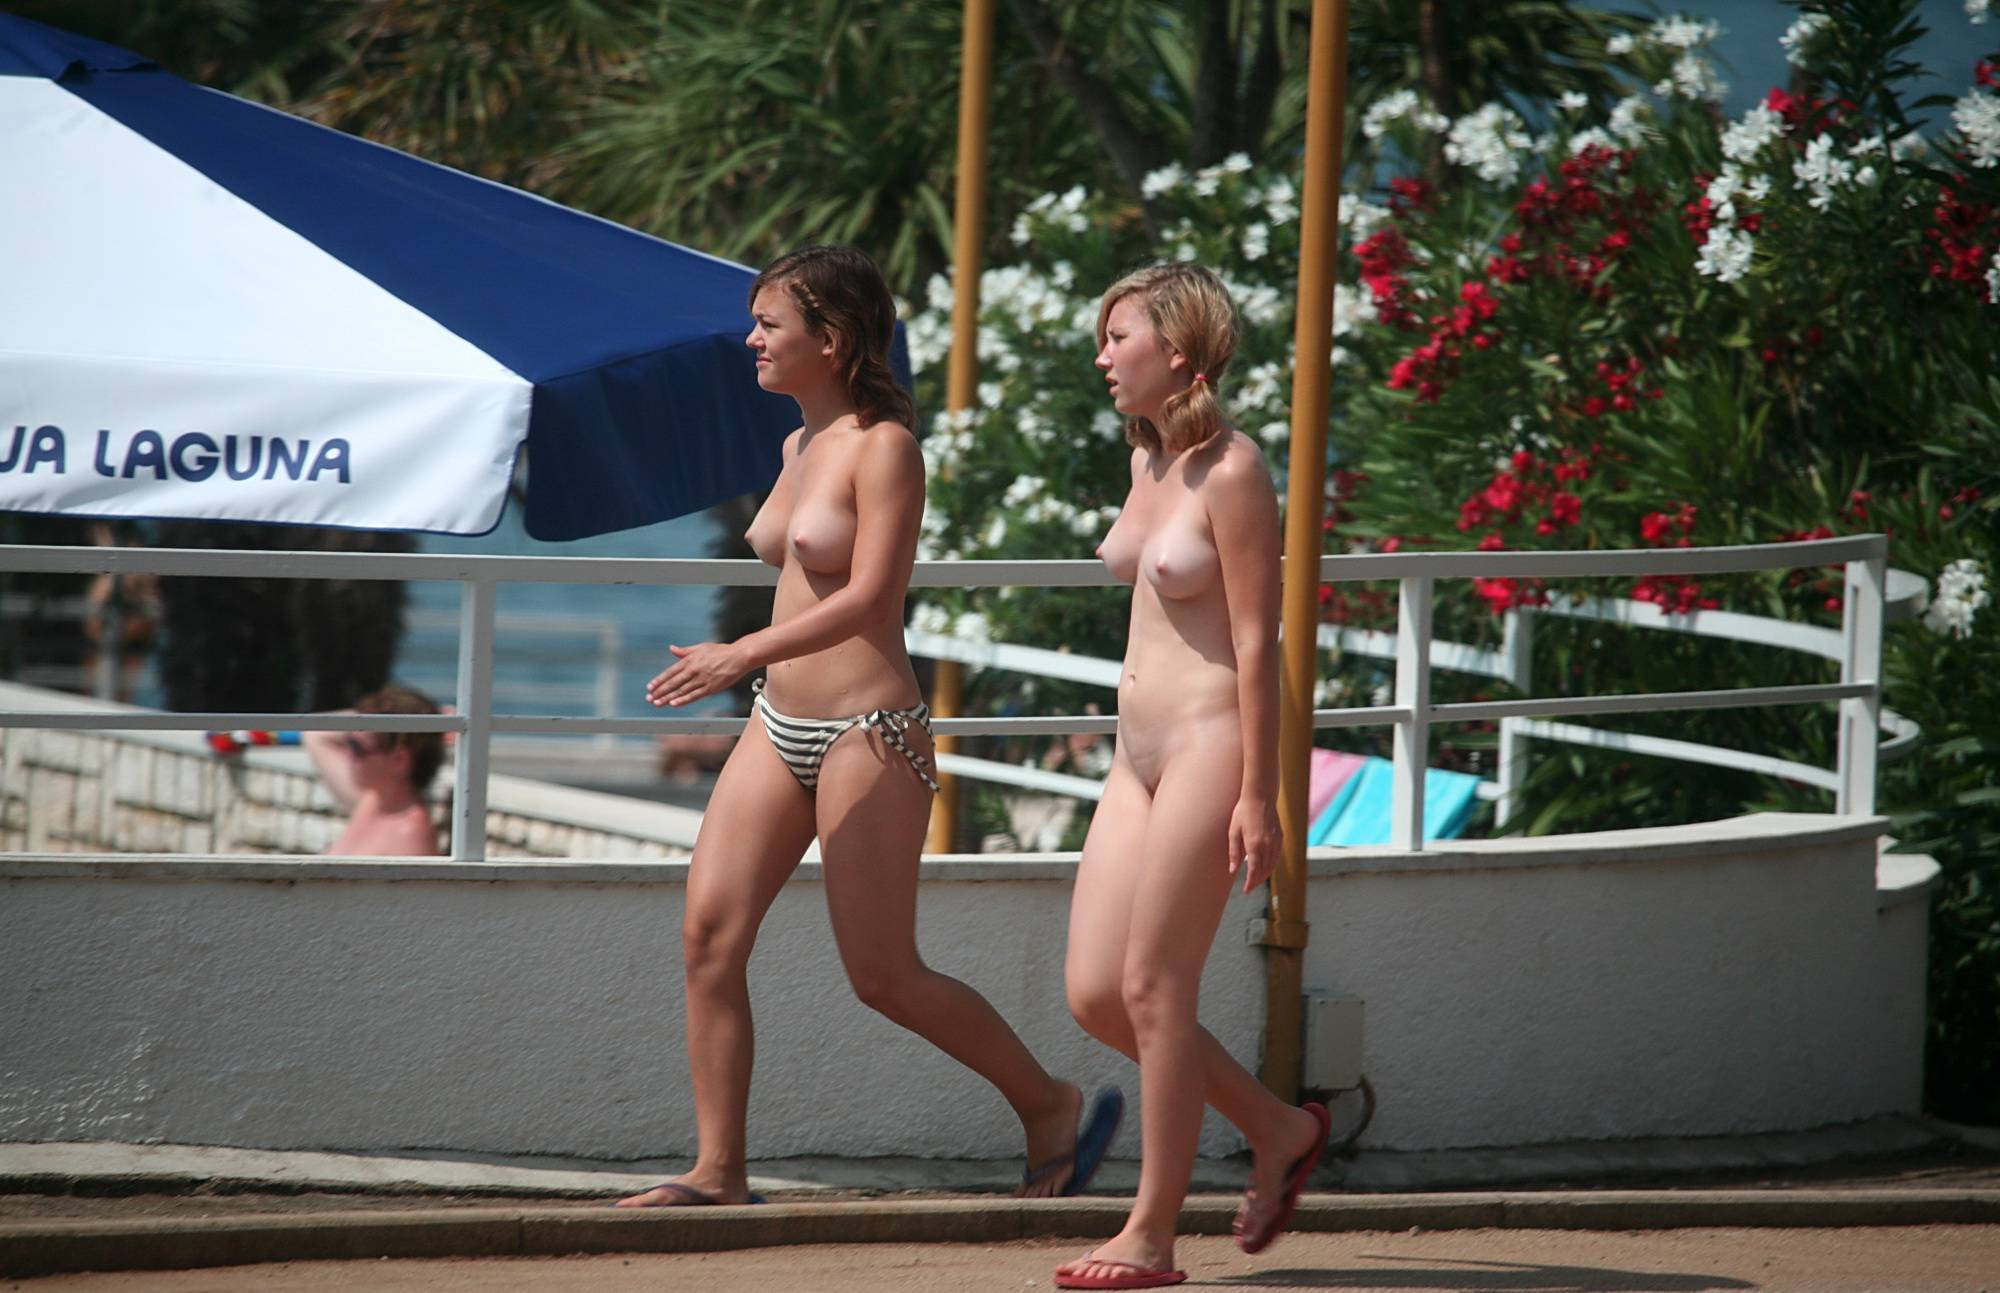 Nudist Pictures Good Friends by the Pool - 2